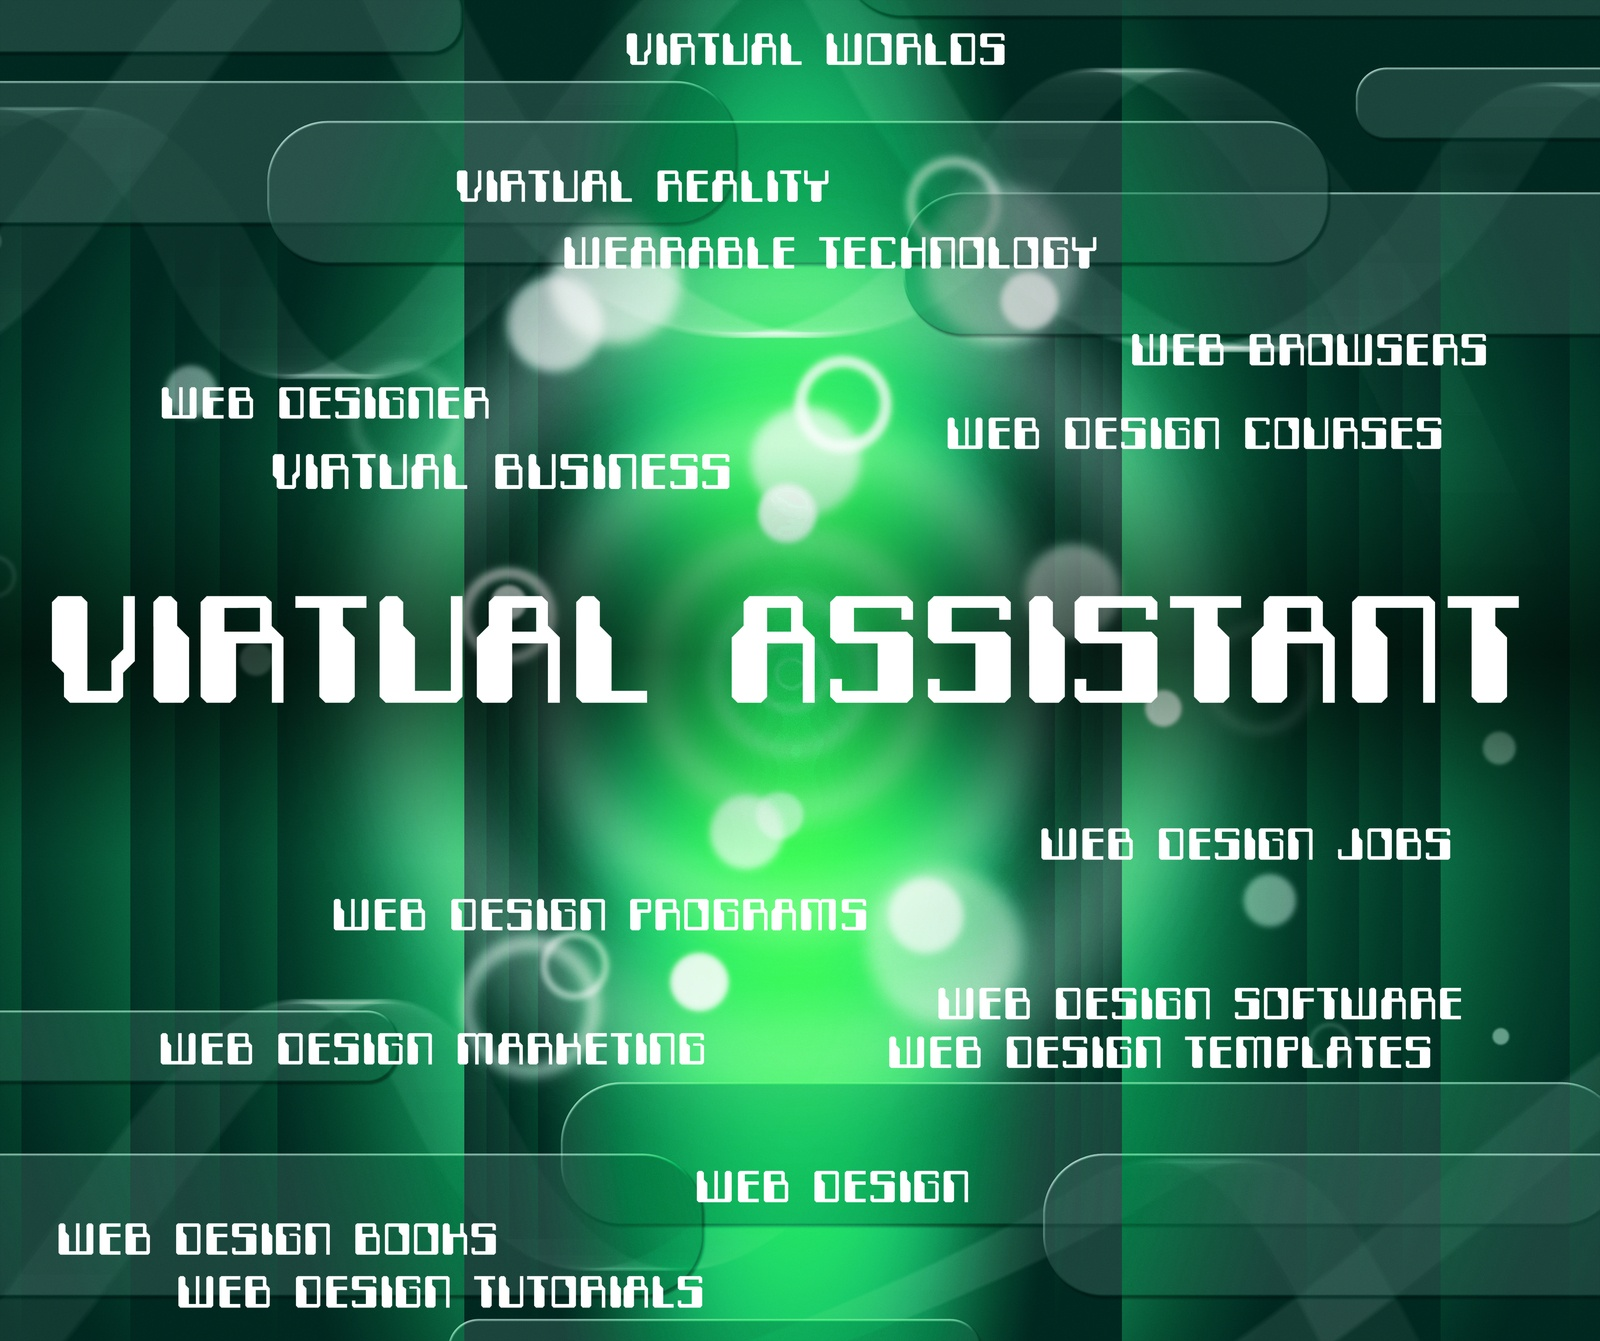 home based jobs - virtual assistant